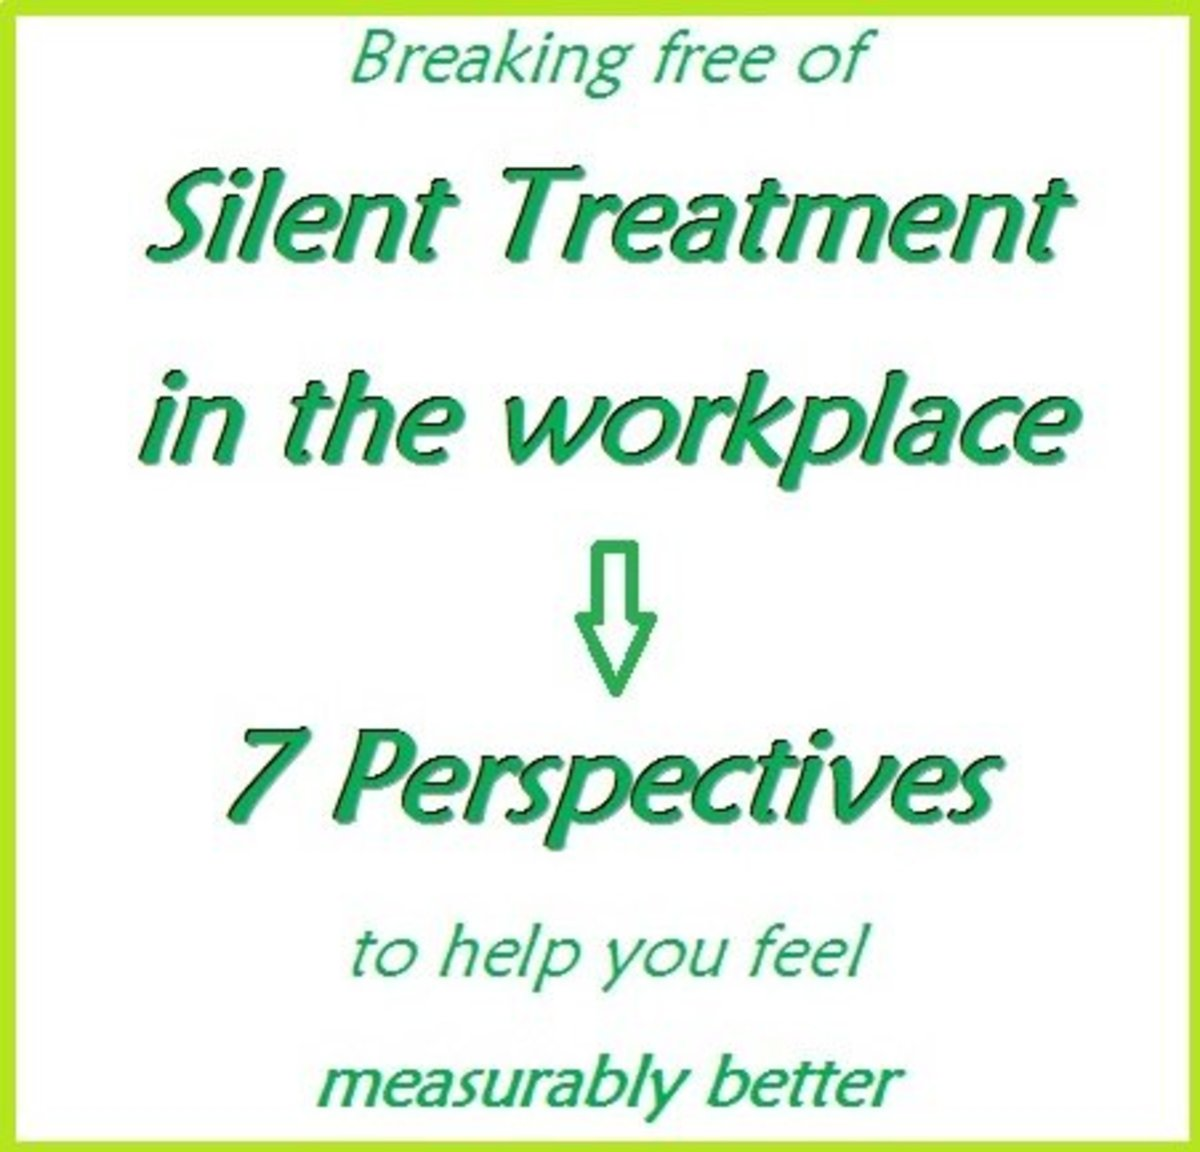 Silent Treatment Stress in the Workplace - Emotional and Physical Health Awareness